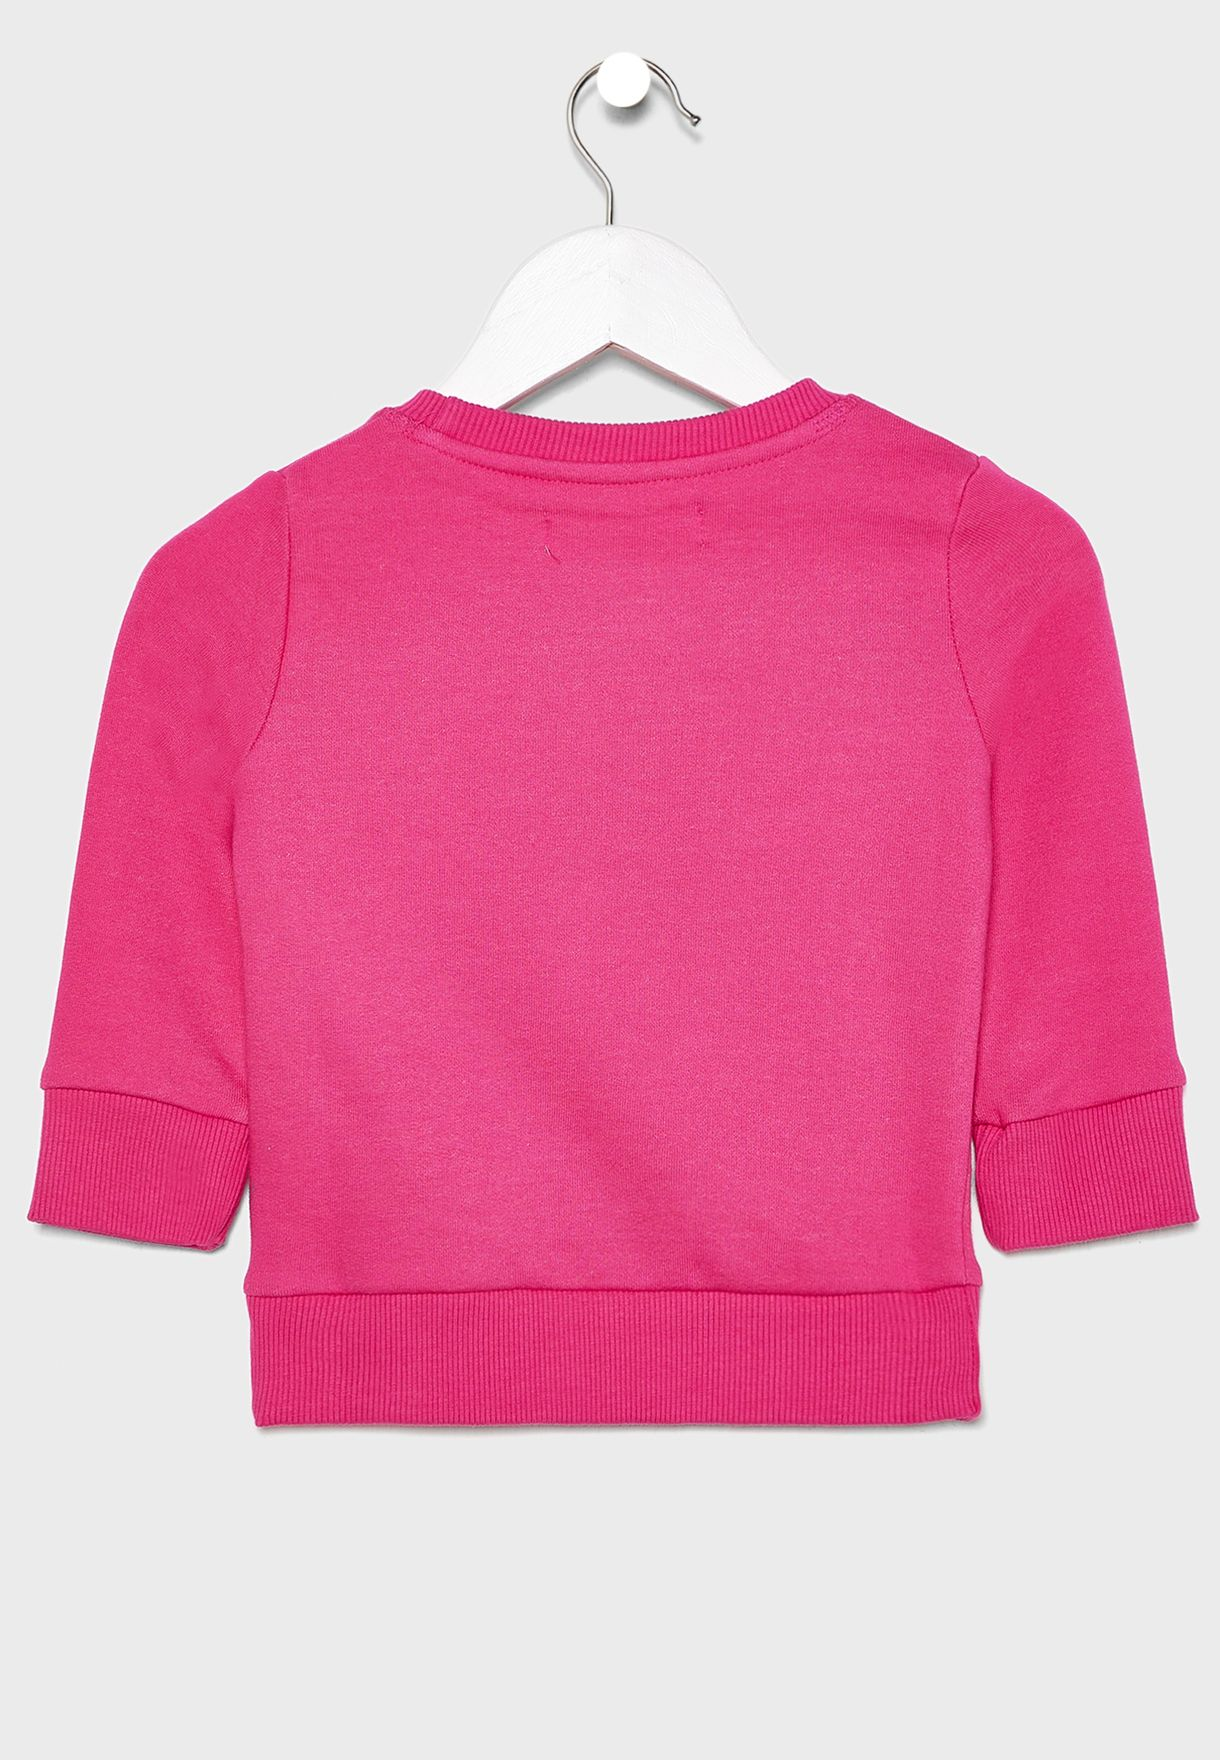 Infant Cutie Sweatshirt